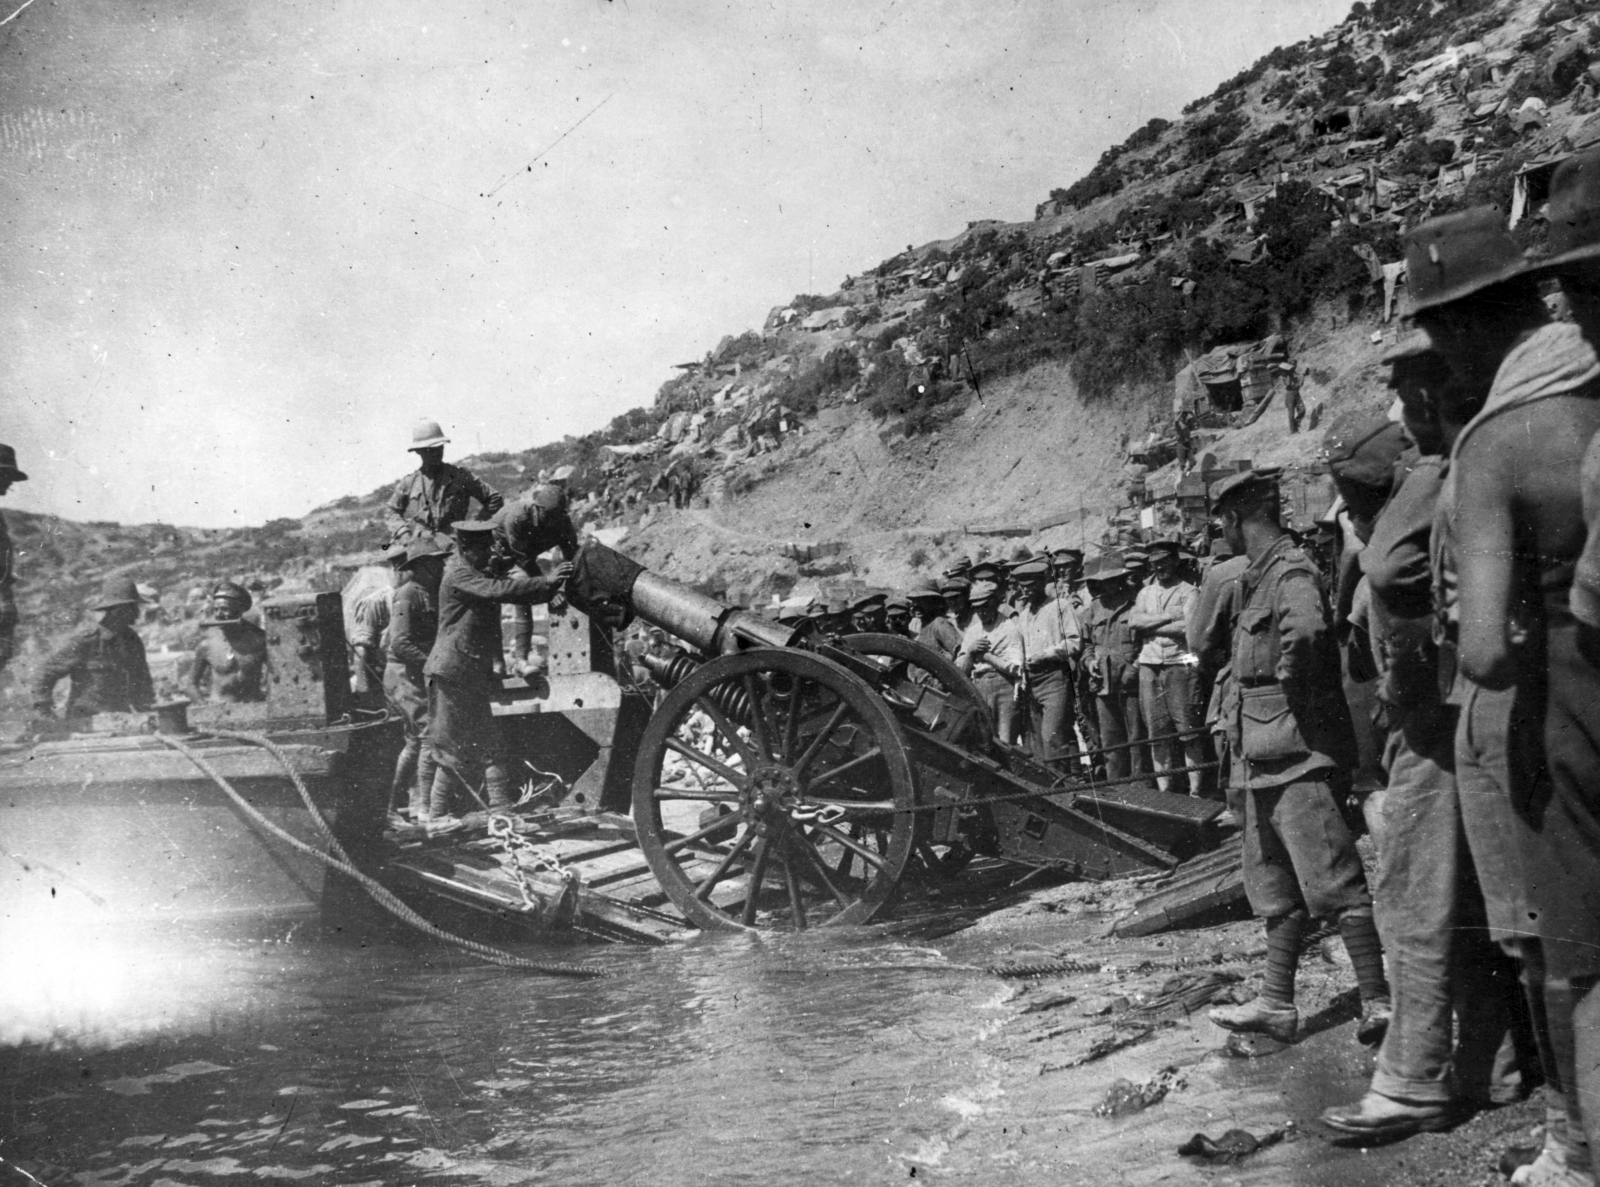 Anzac Day 2015: History behind remembrance of the Gallipoli Campaign